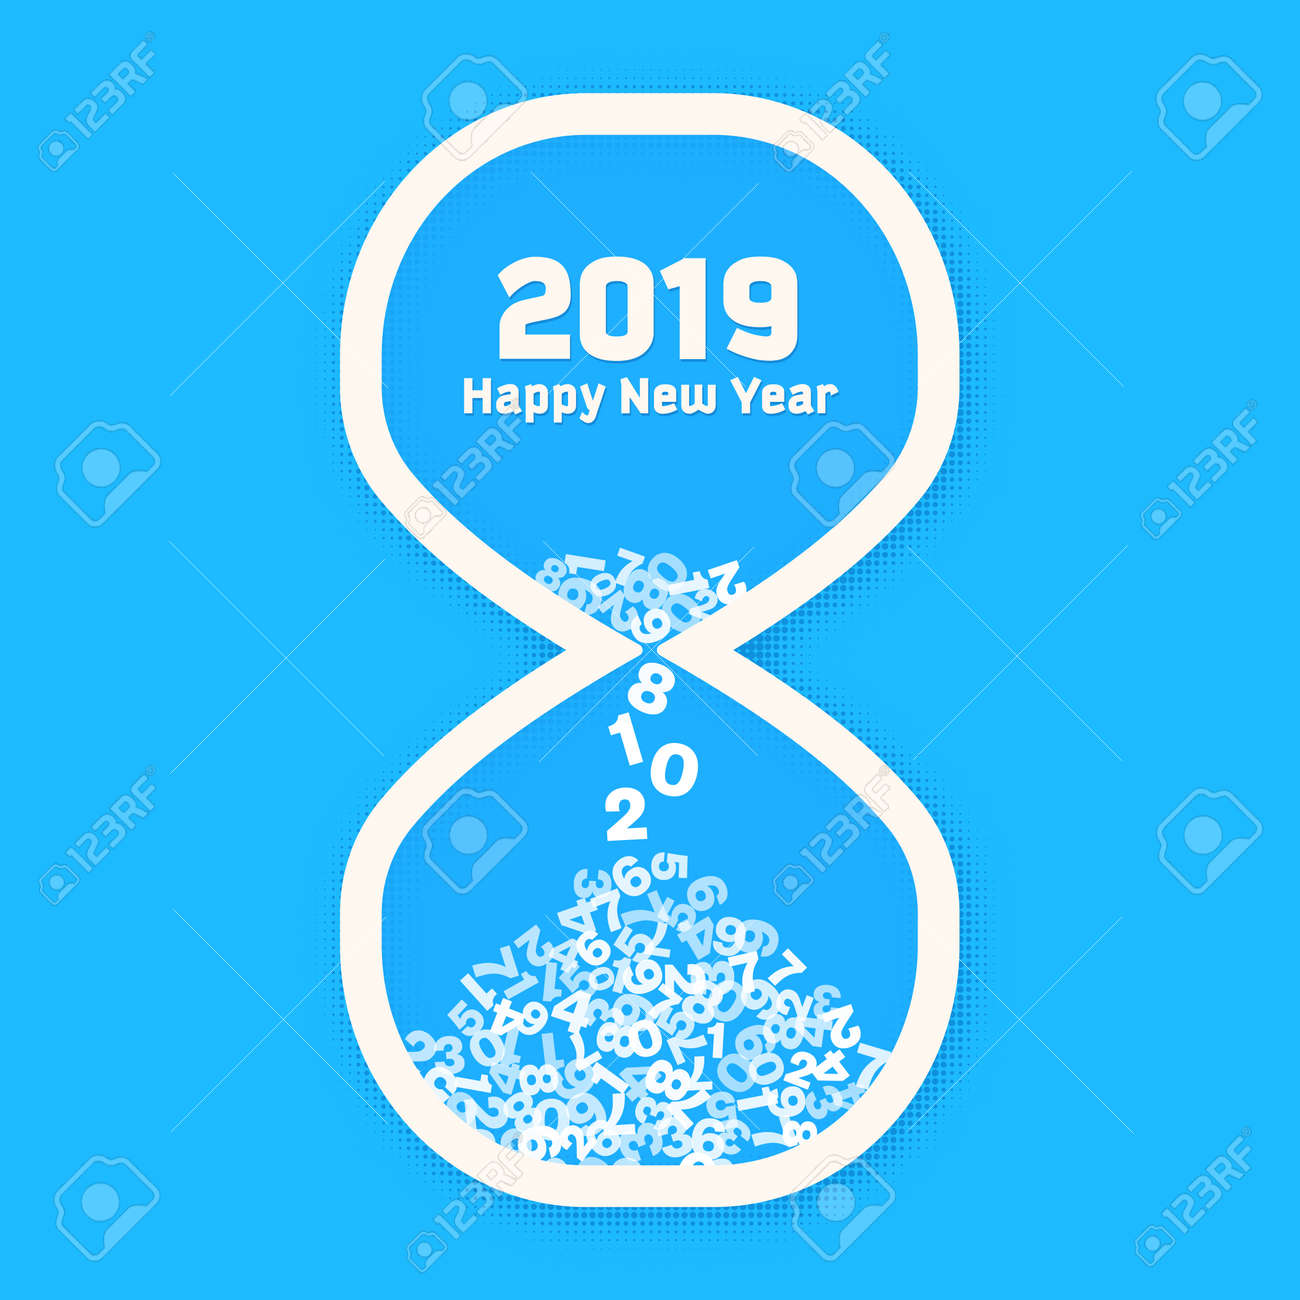 new year 2018 countdown and happy new year 2019 greeting card last days of year